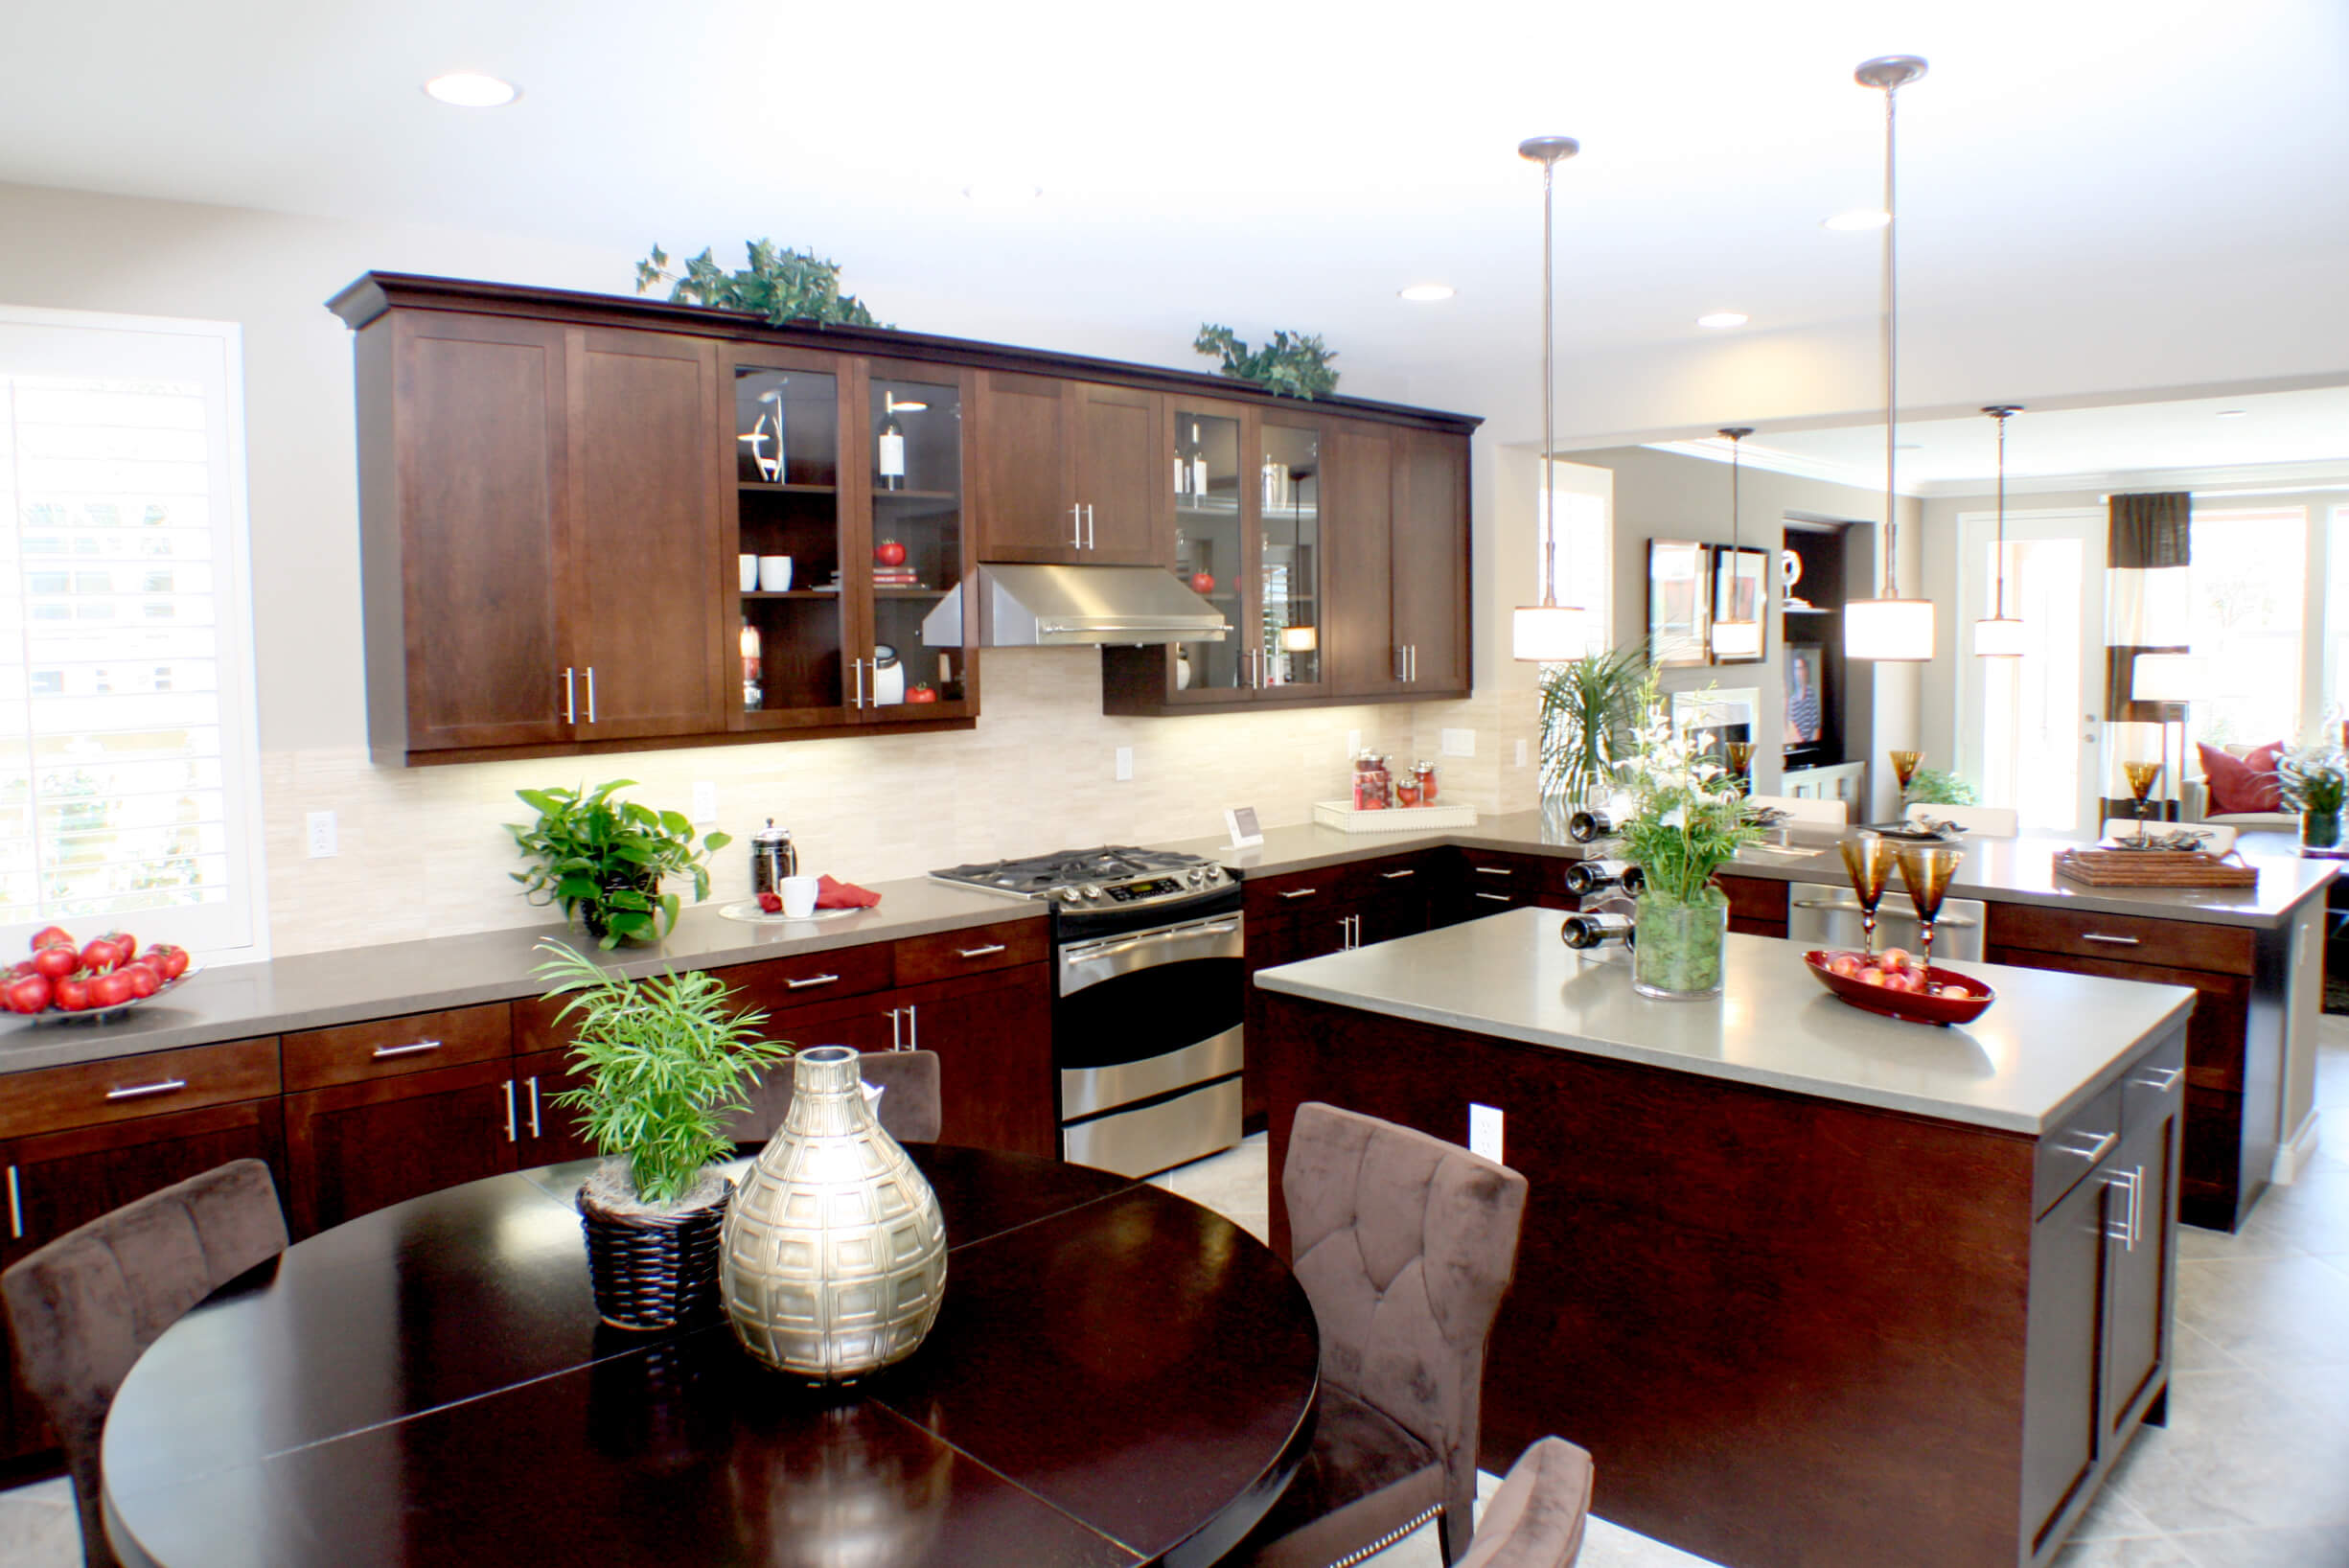 Production_kitchen_transitional_wood_ptshaker_maplewood_toffee_01